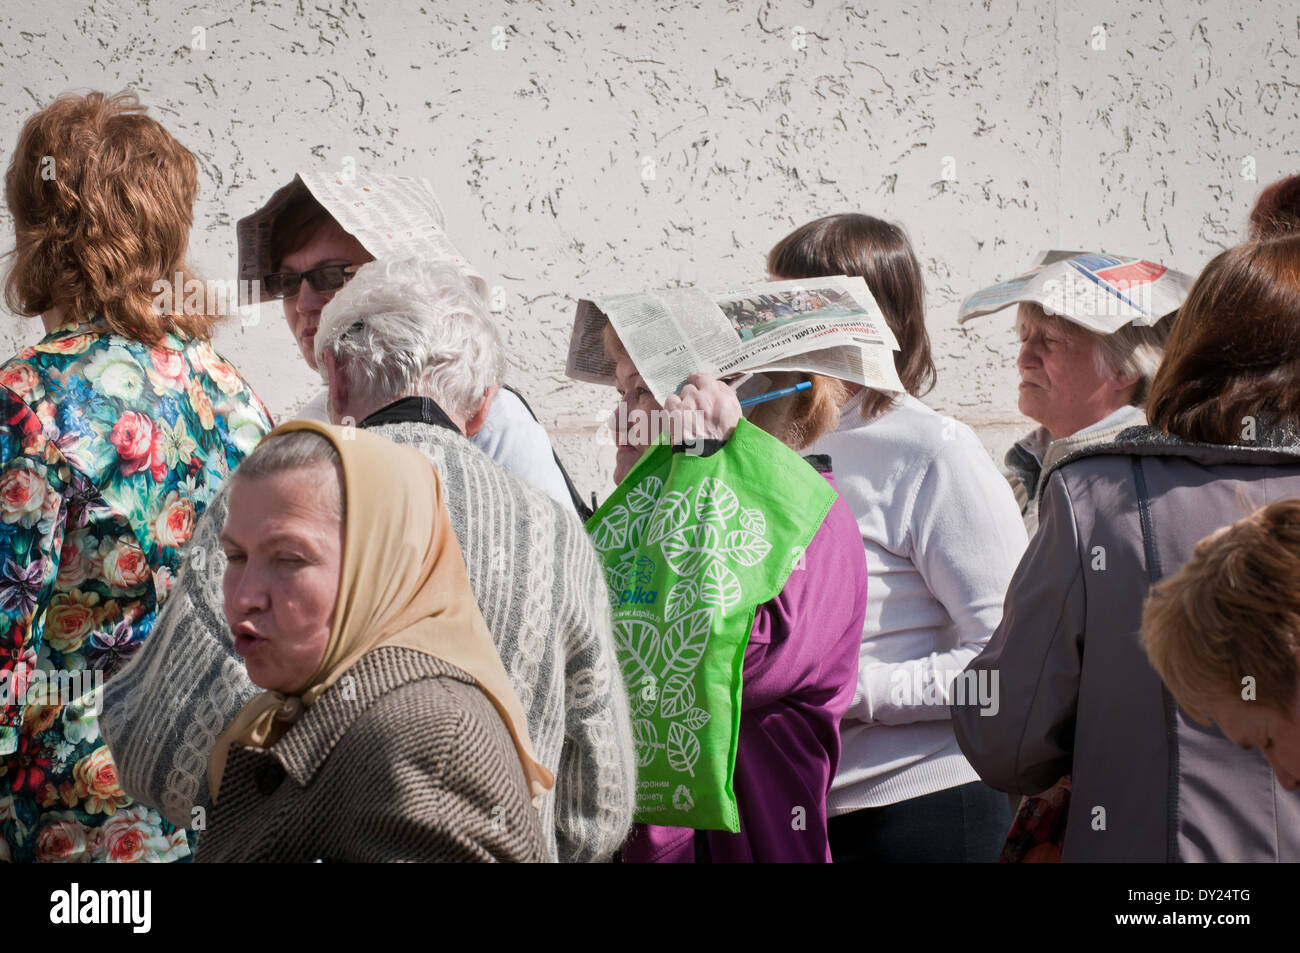 25.03.2014 People - mostly Russians - stands in a long queue to get a Russian passport (identity card) in Yevpatoria - Stock Image